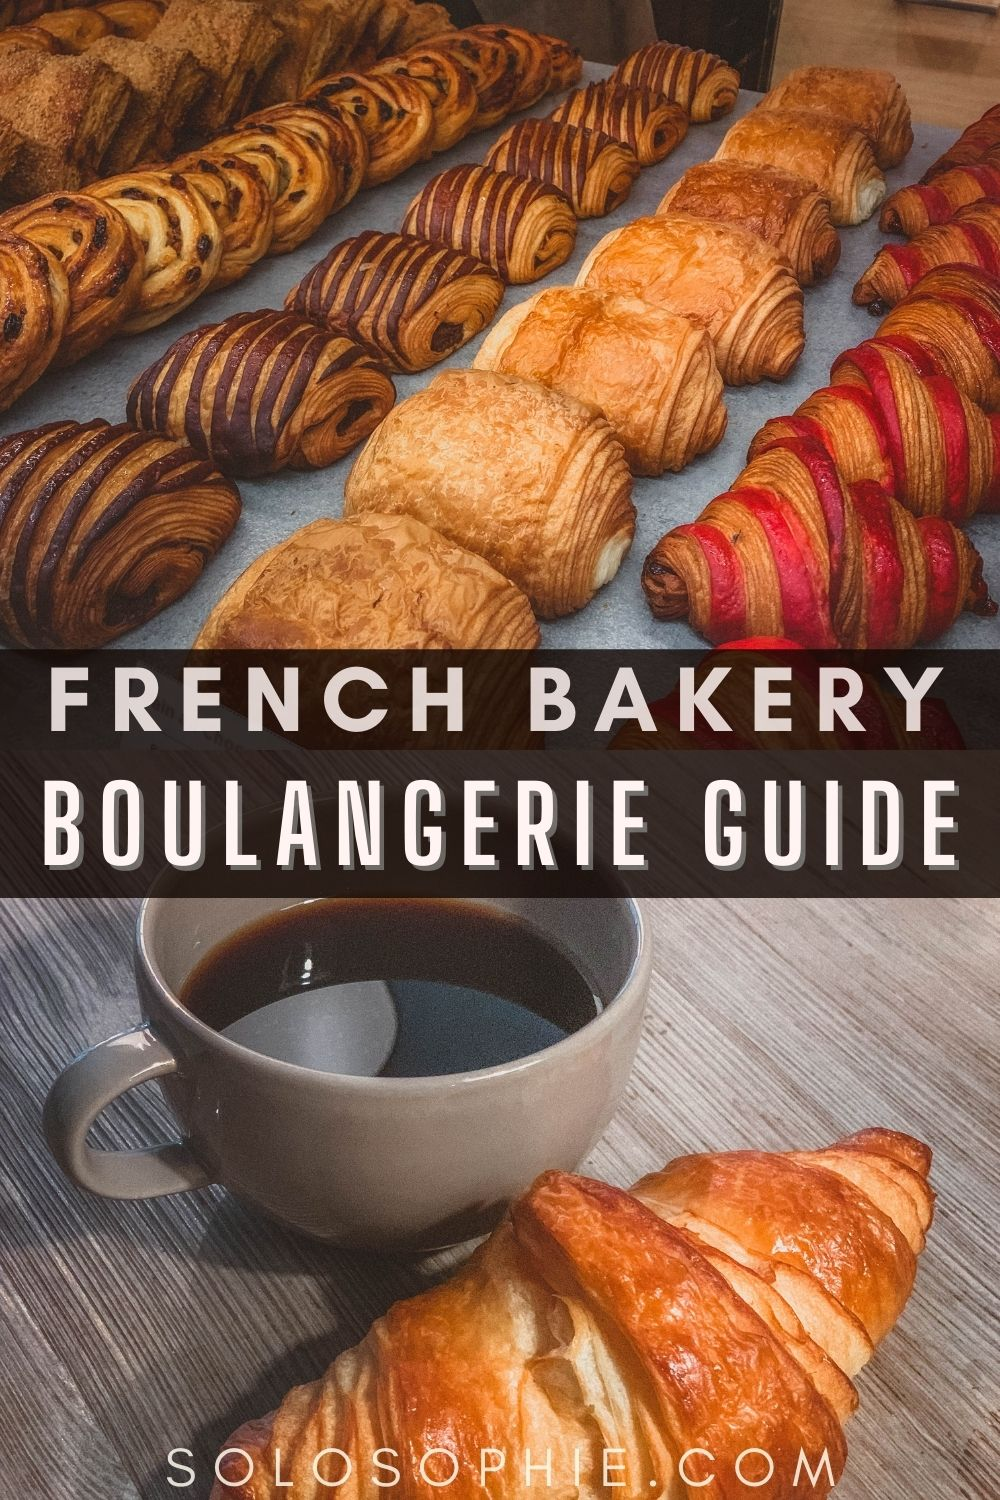 French Bakery Guide: What to Buy & How to Order in a boulangerie in France